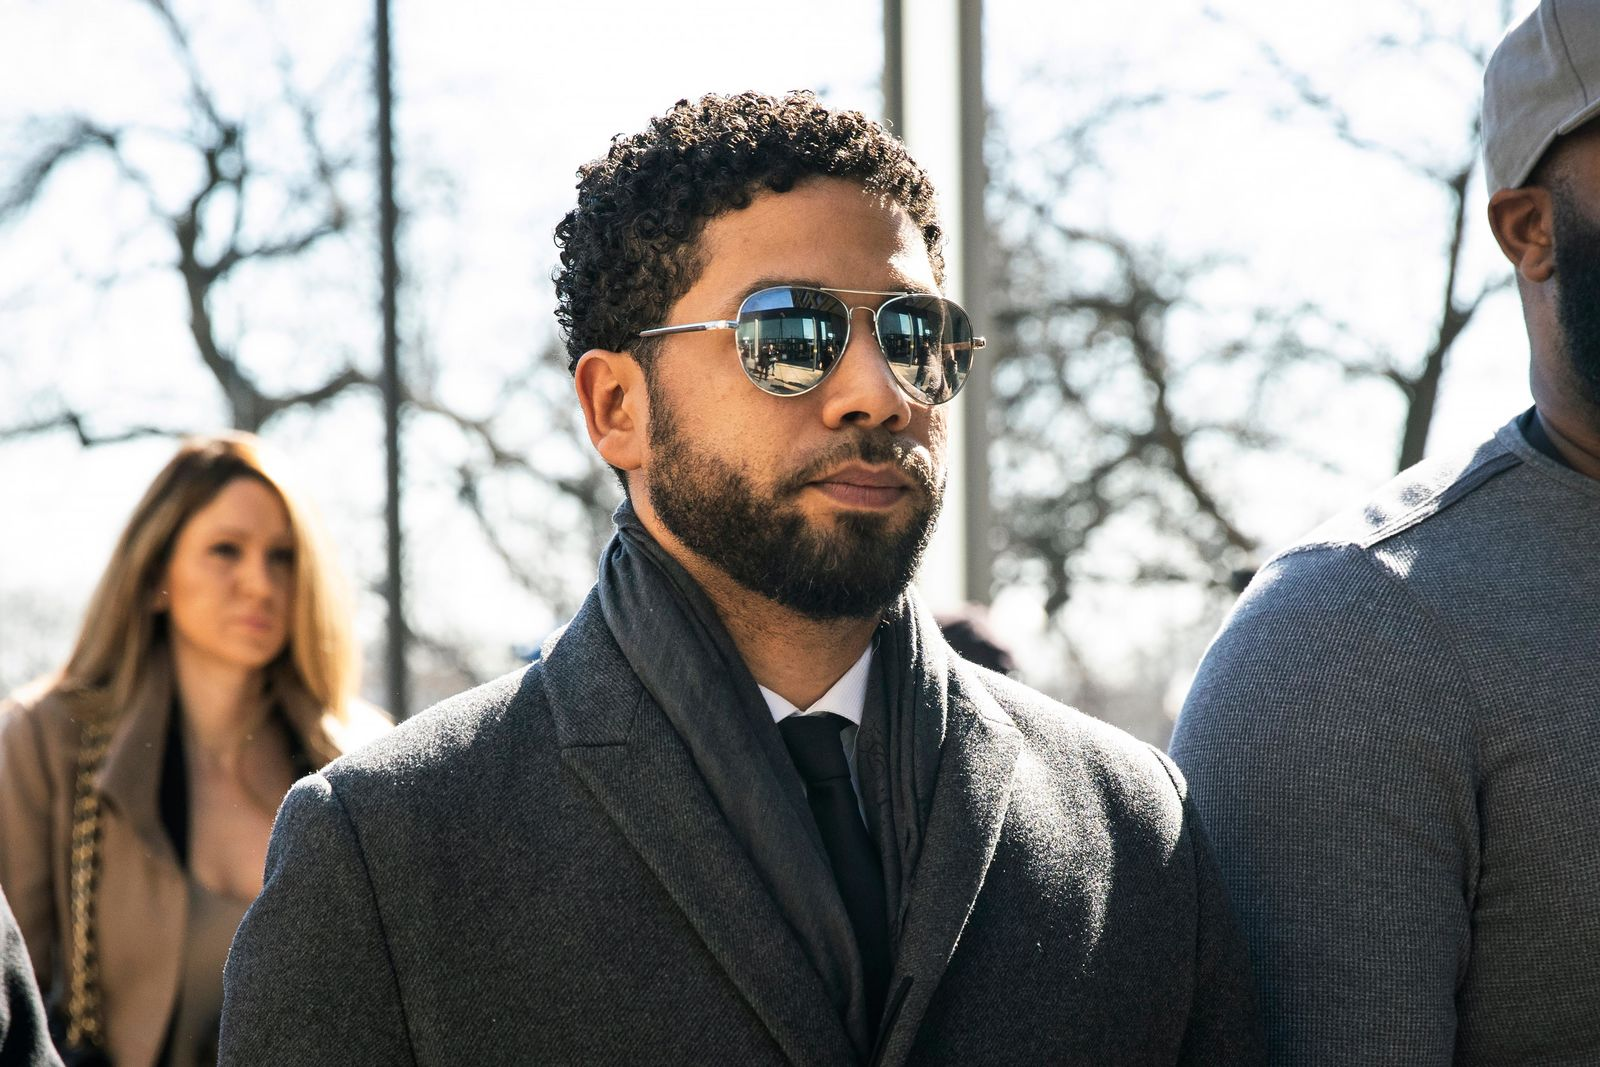 """Empire"" actor Jussie Smollett, center, arrives at Leighton Criminal Court Building for a hearing to discuss whether cameras will be allowed in the courtroom during his disorderly conduct case on Tuesday, March 12, 2019, in Chicago. (Ashlee Rezin/Chicago Sun-Times via AP)"